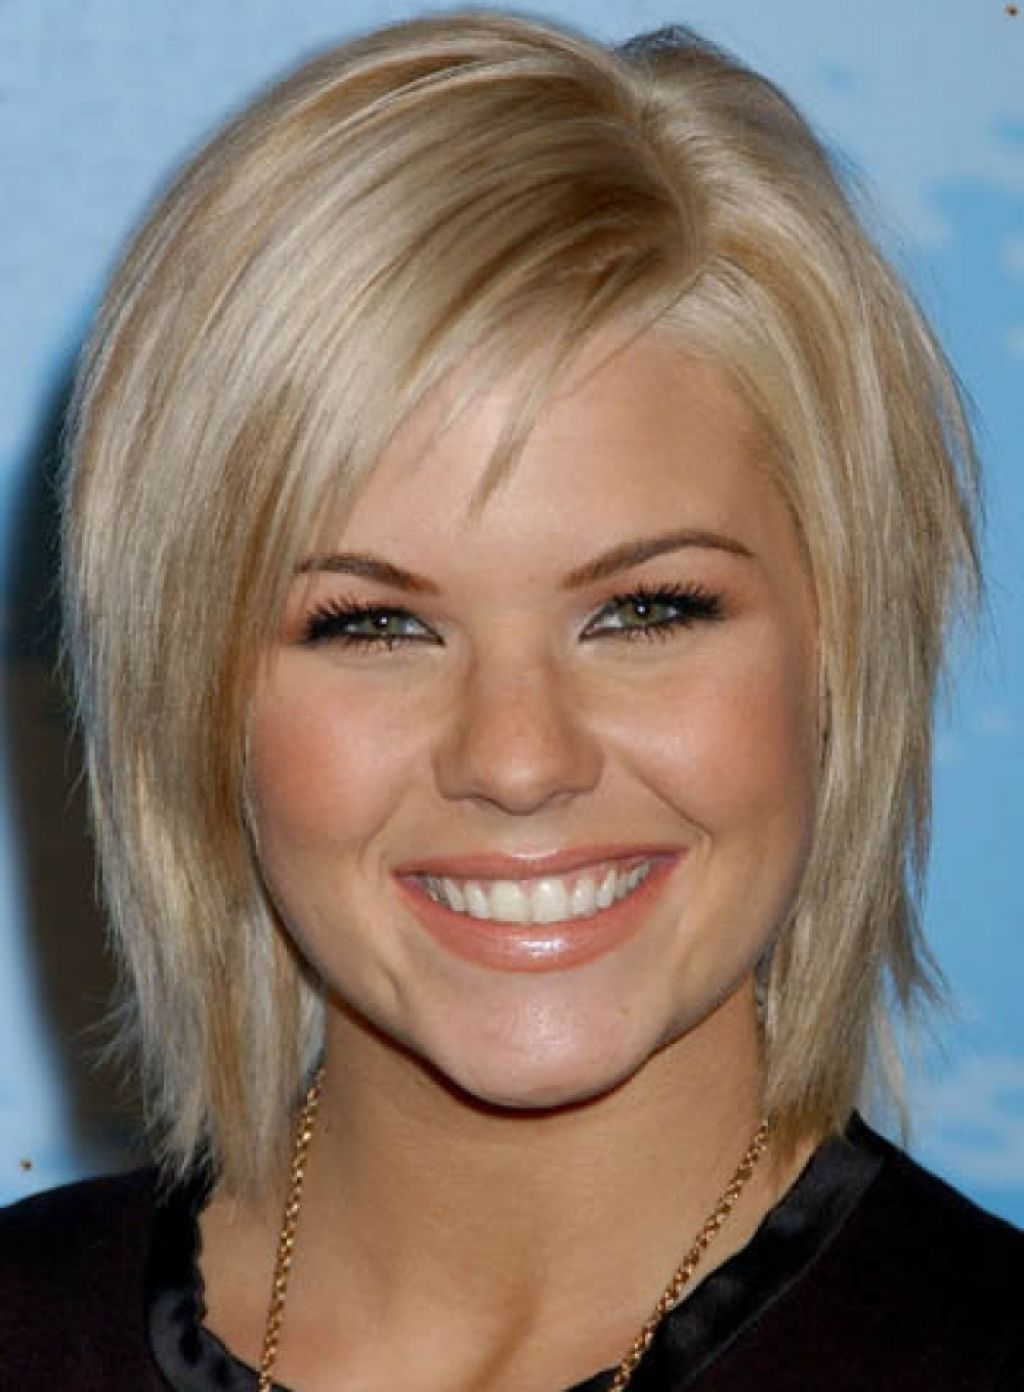 Short Haircuts For Fine Thin Hair Easy Care Short Haircuts For Thick Hair Hai Trendy Short Hair Styles Short Hair With Layers Short Hair Styles For Round Faces